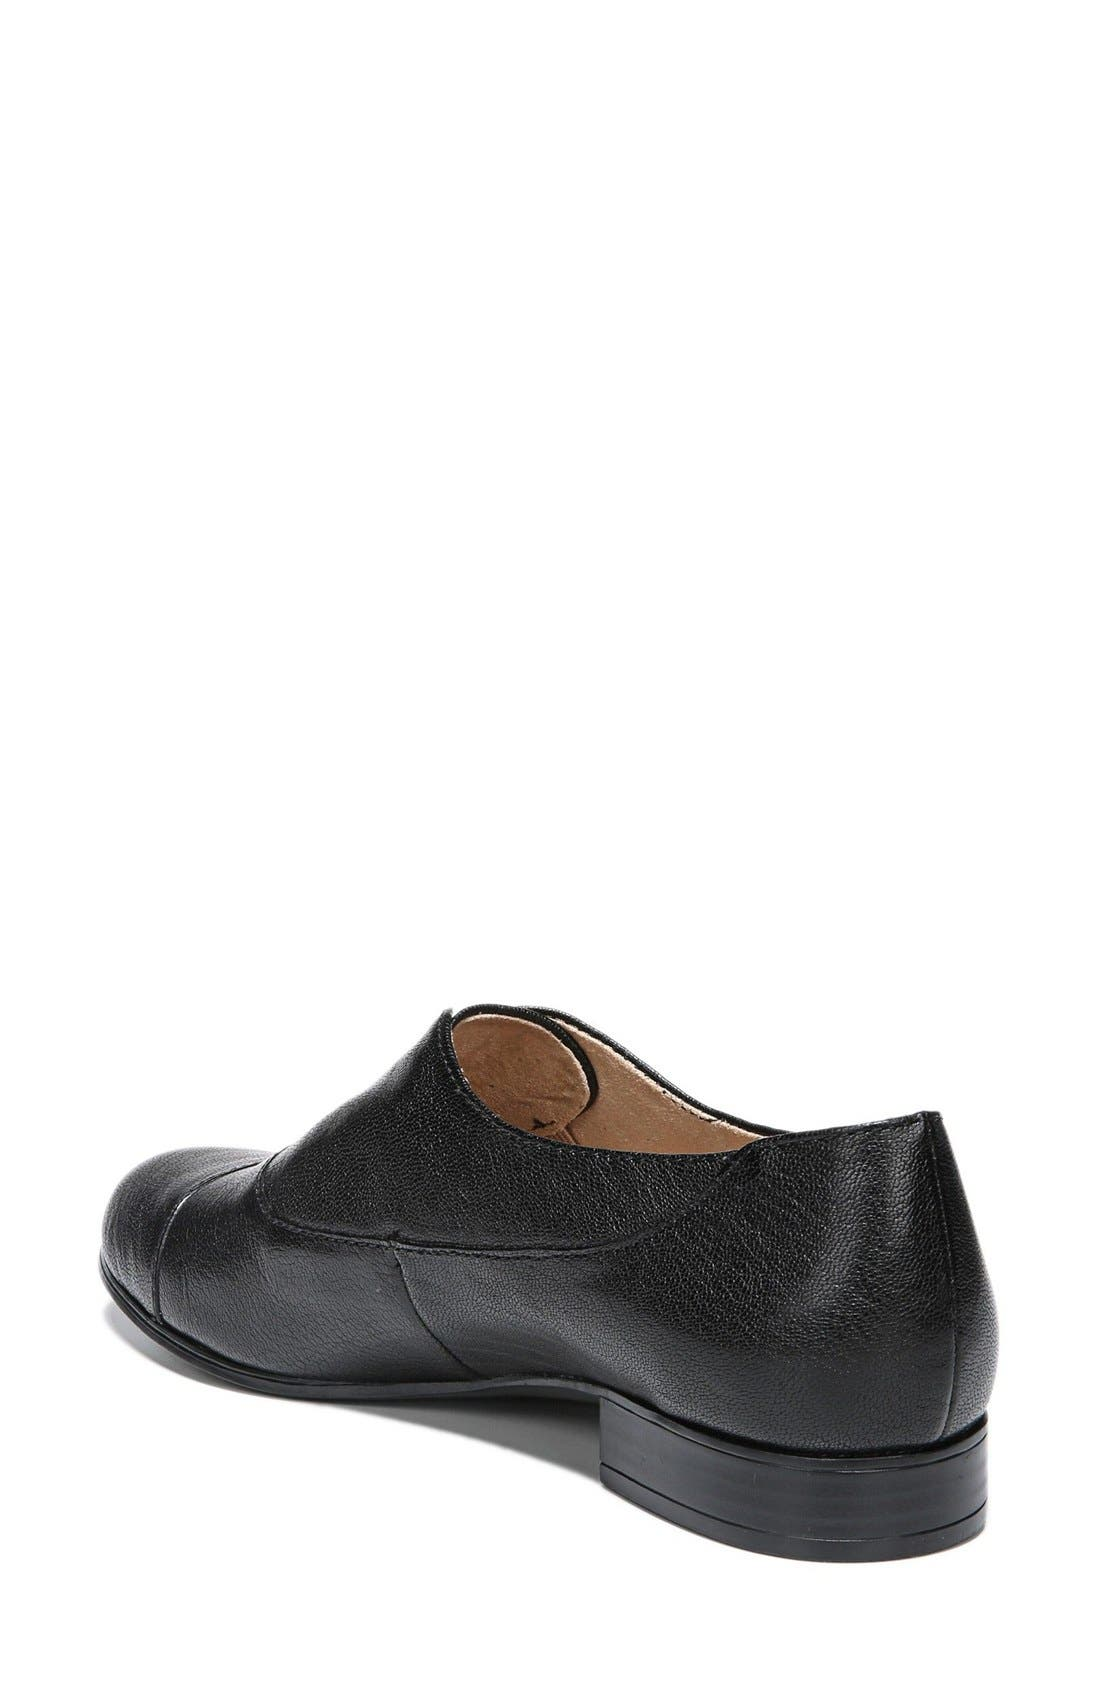 NATURALIZER,                             'Carabell' Laceless Oxford,                             Alternate thumbnail 3, color,                             001